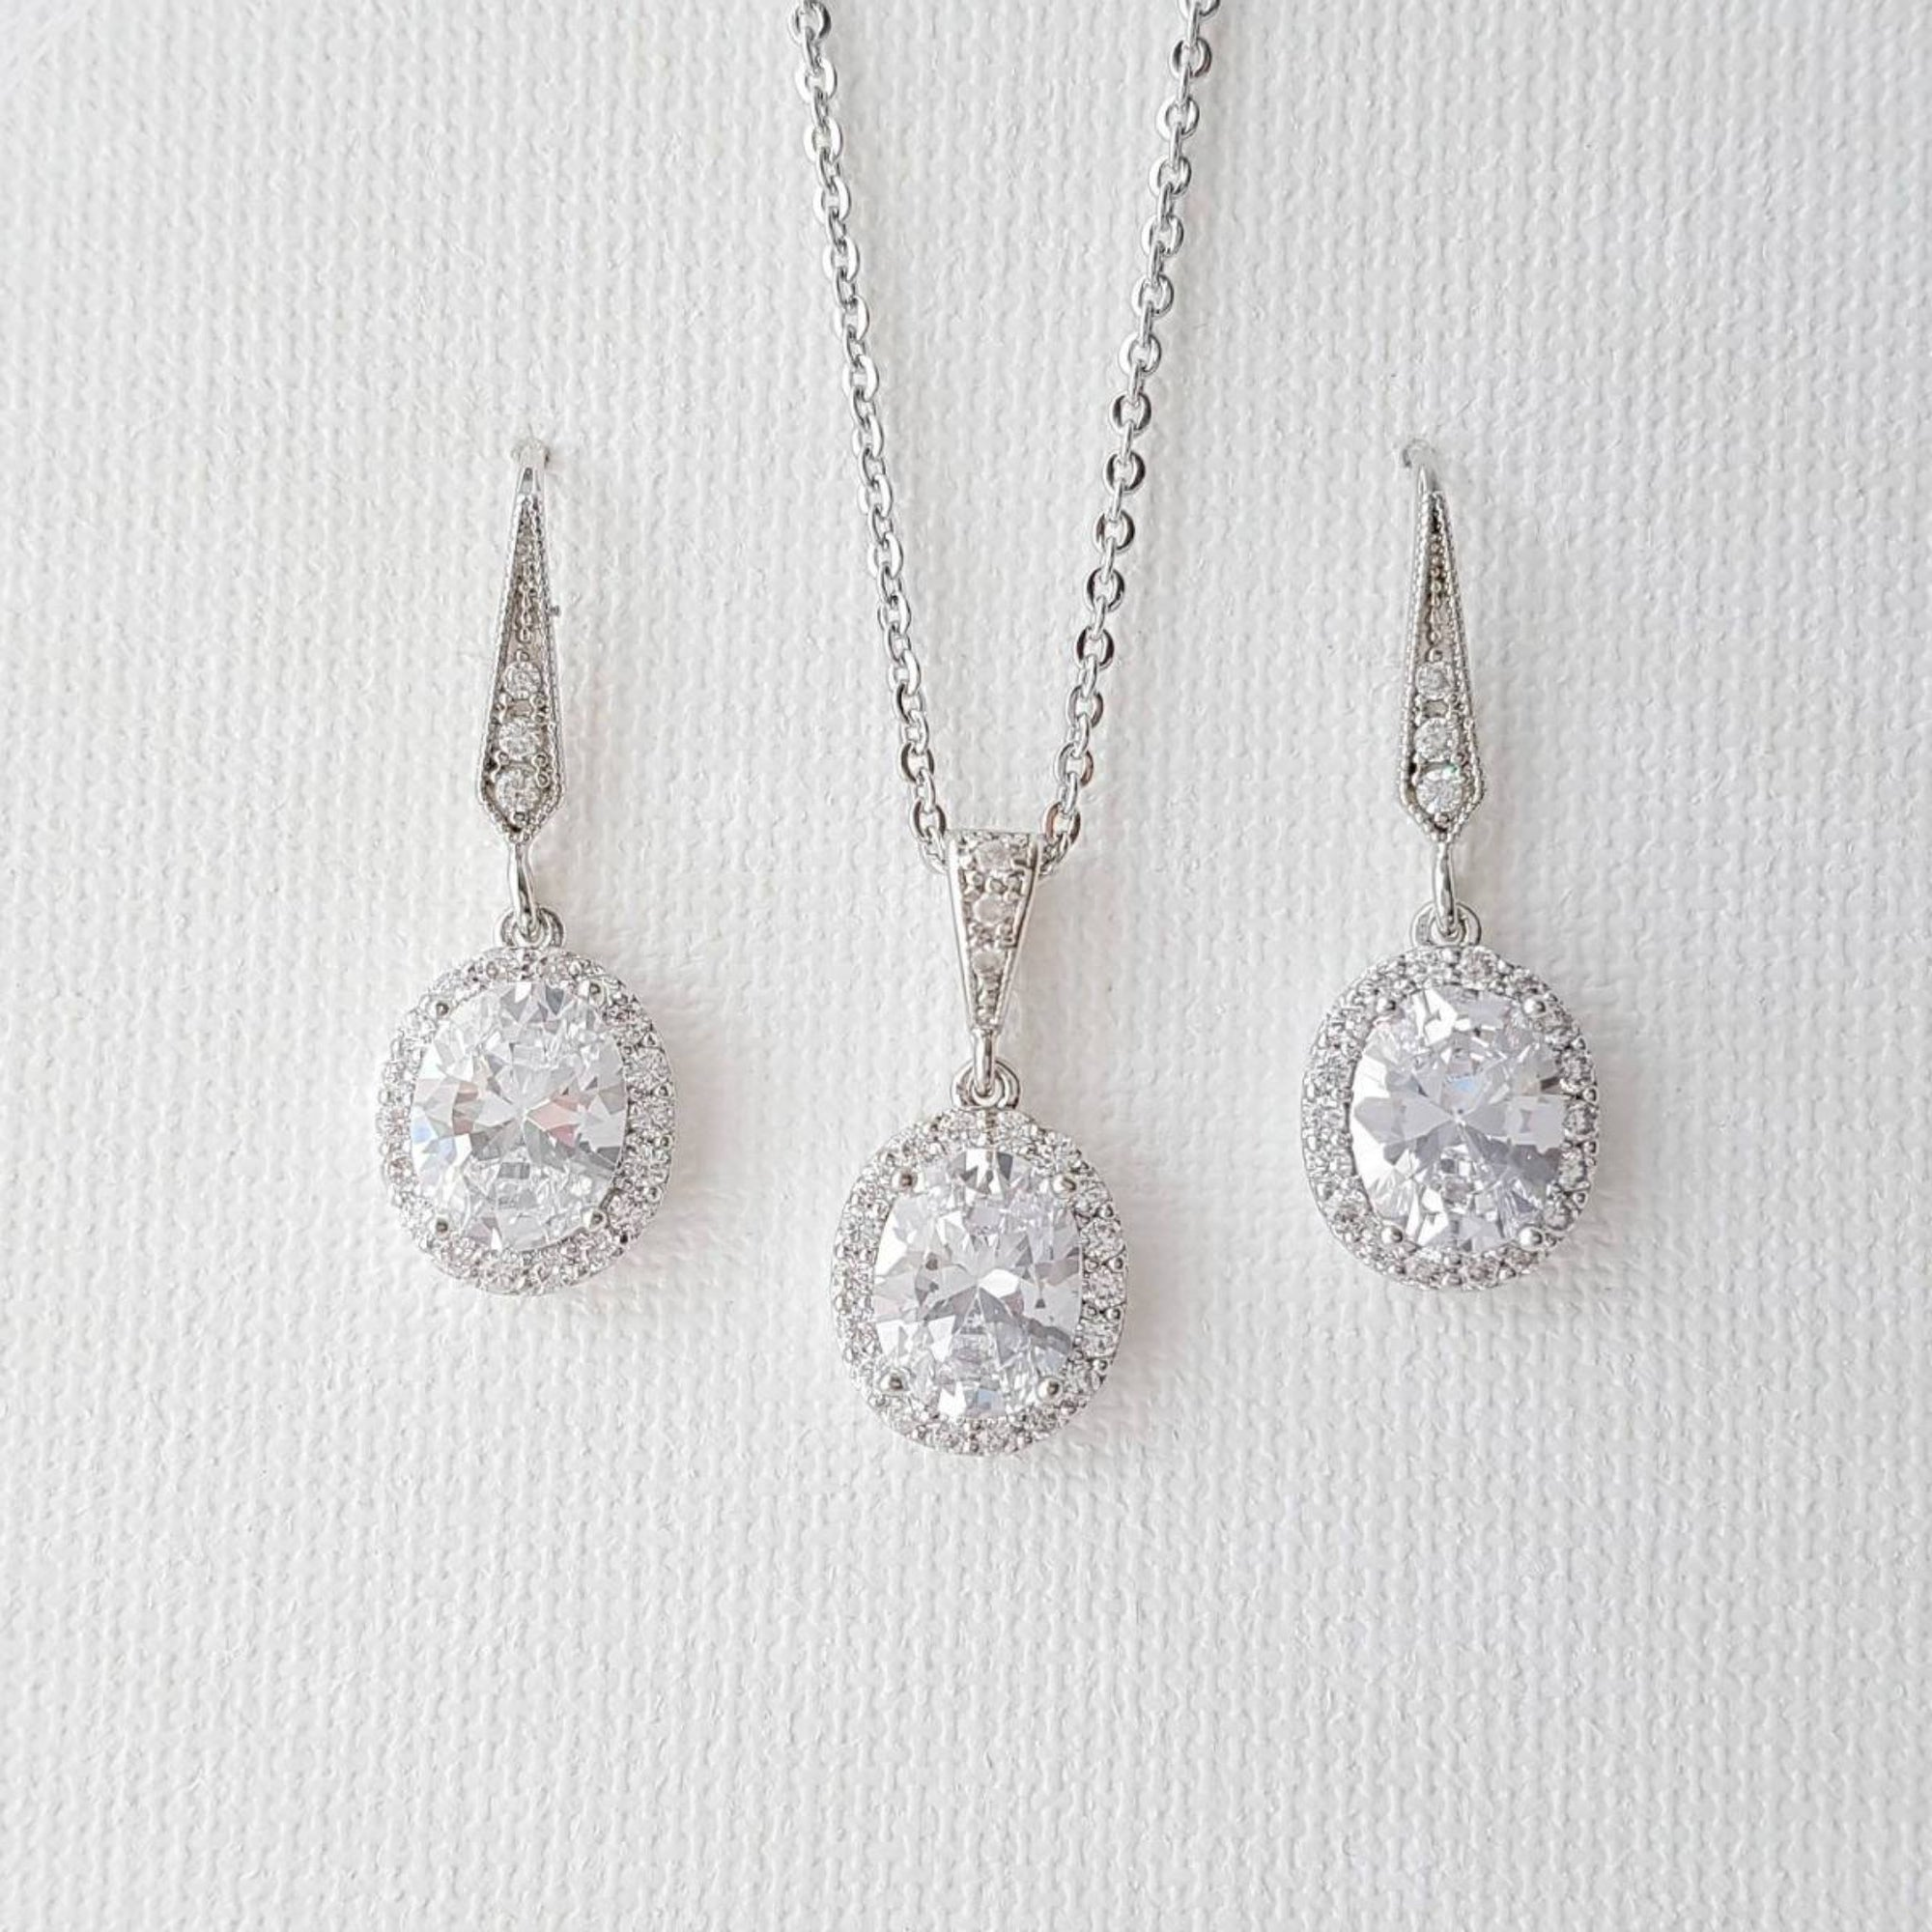 Bridesmaid Jewelry Set, Oval Bridal Set, Crystal Drop Earrings Necklace Set, Halo Style, Cubic Zirconia, Wedding Jewelry Set, Emily - PoetryDesigns